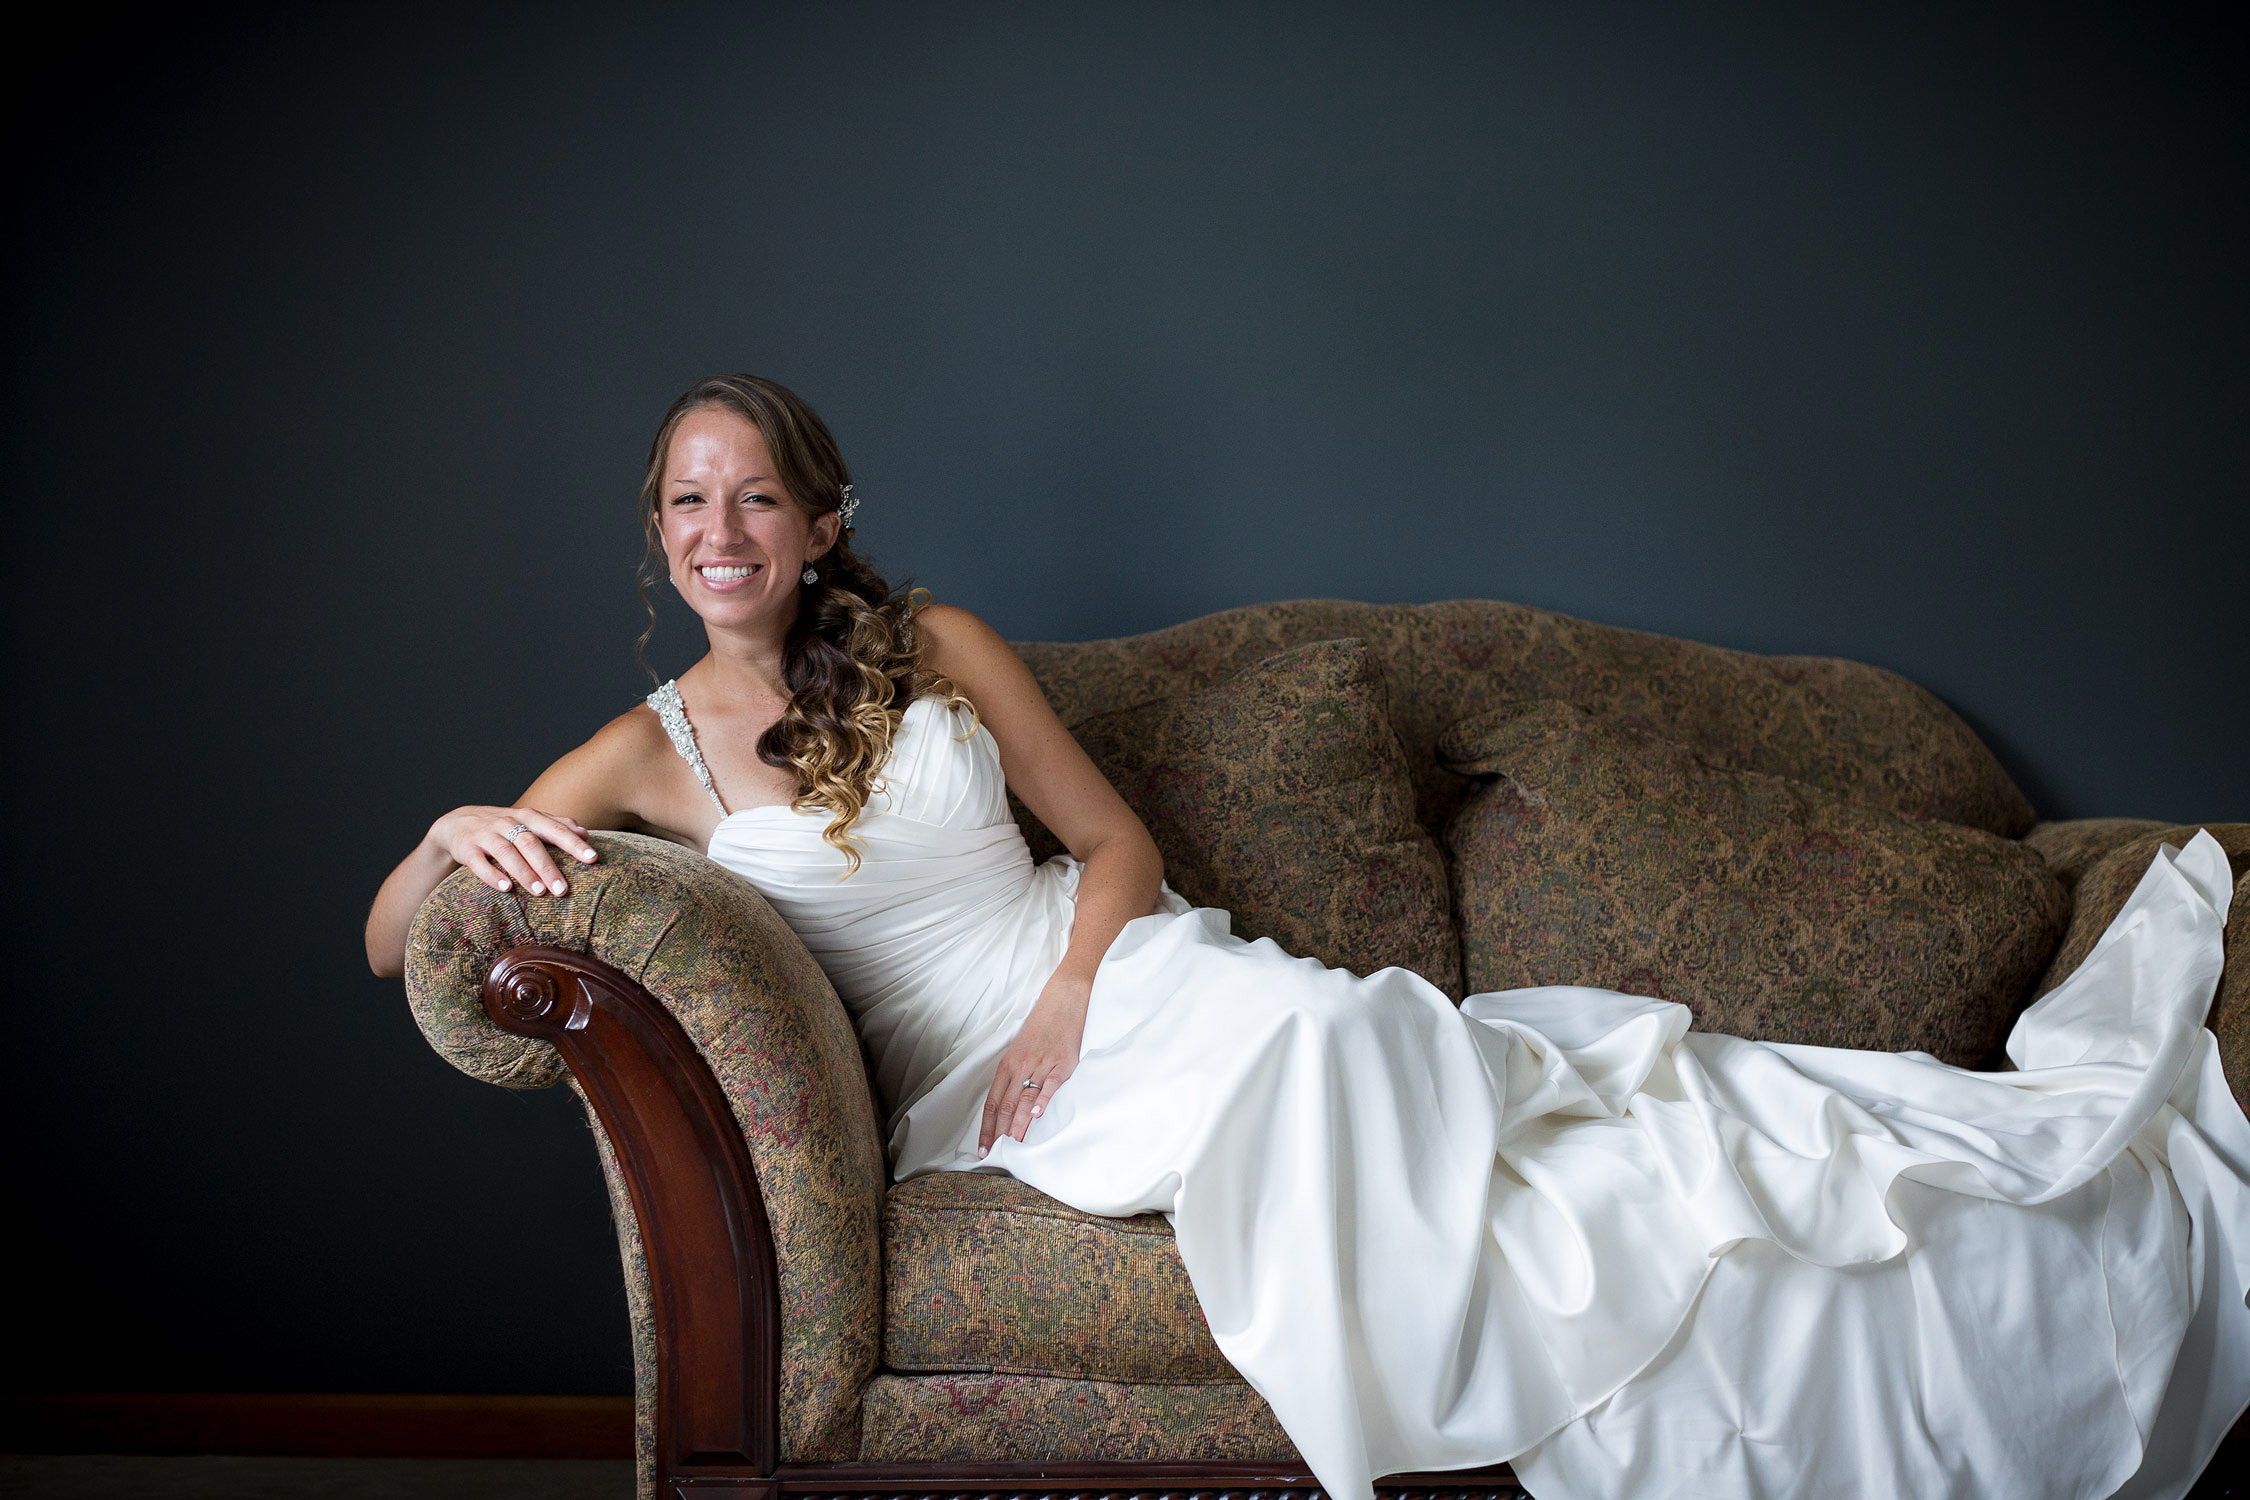 Picture of a bride posing on a couch in a photo by Vermont wedding photographer Stina Booth